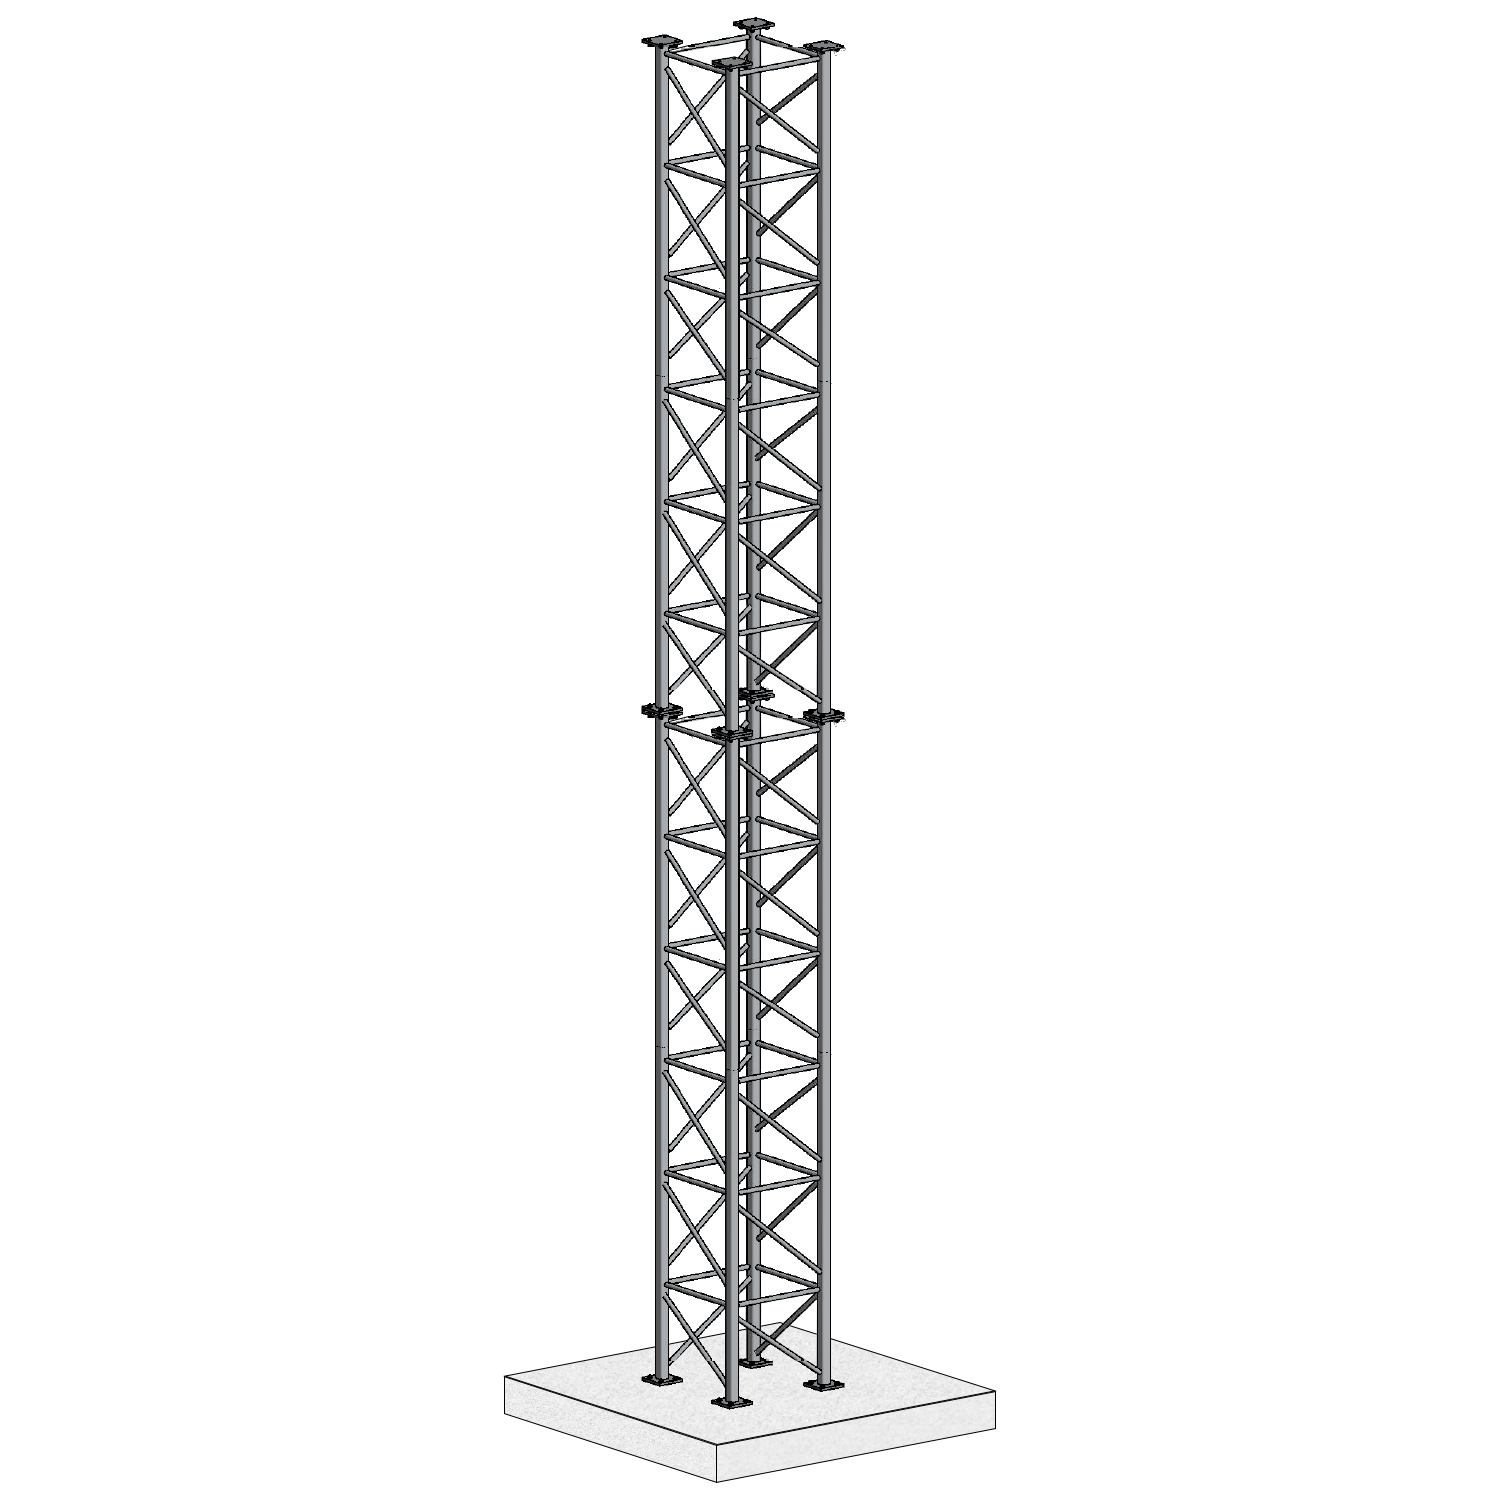 GT1000 Galvanised Free-Standing Lattice Tower | Fabrication